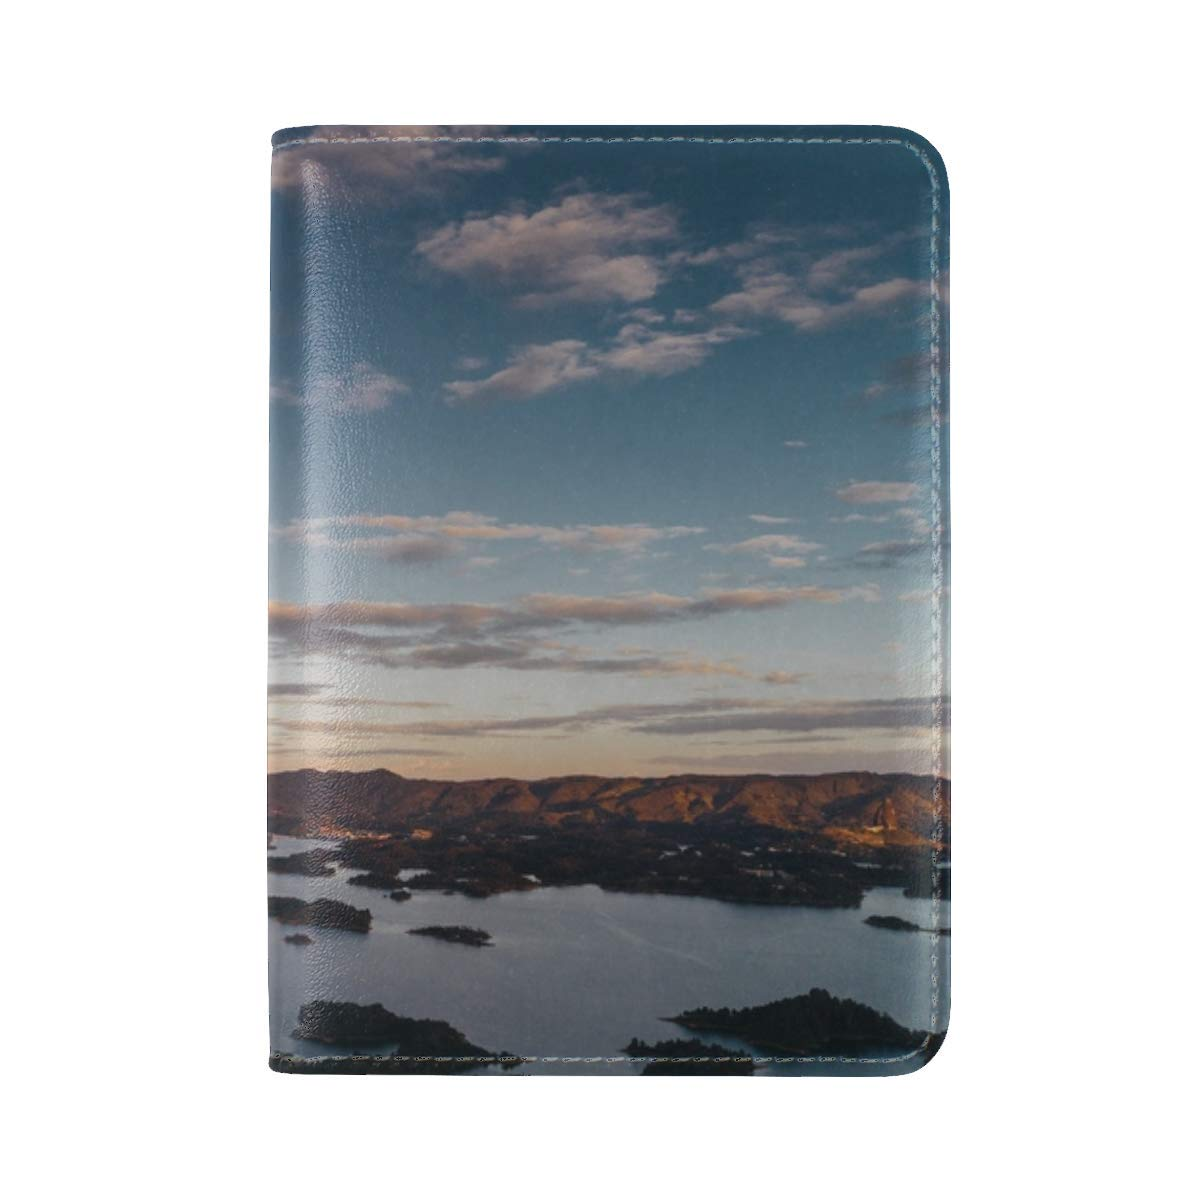 Mountains Islands Coast Leather Passport Holder Cover Case Travel One Pocket